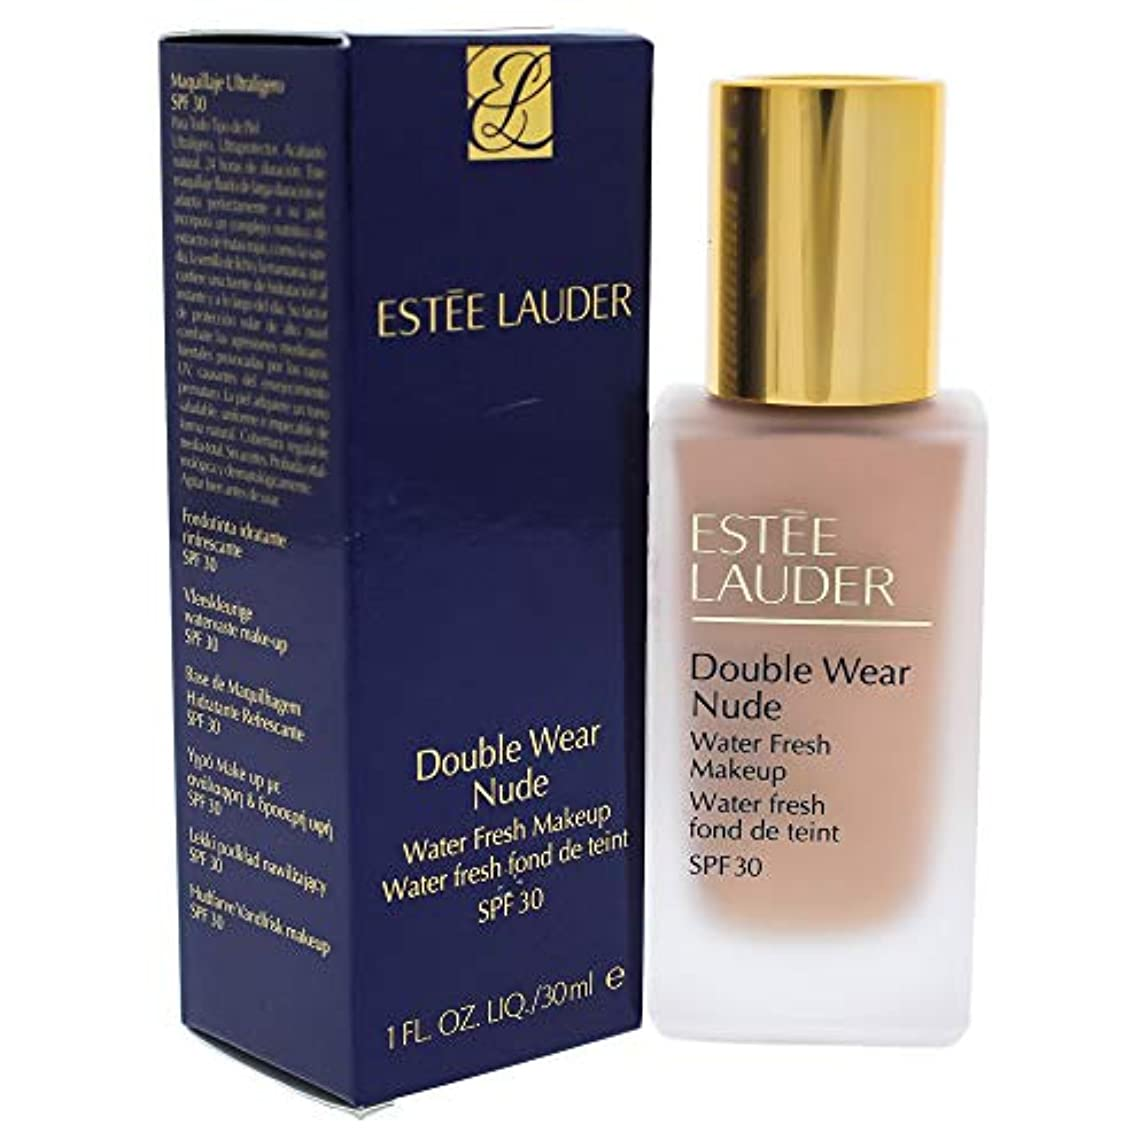 エスティローダー Double Wear Nude Water Fresh Makeup SPF 30 - # 2C2 Pale Almond 30ml/1oz並行輸入品